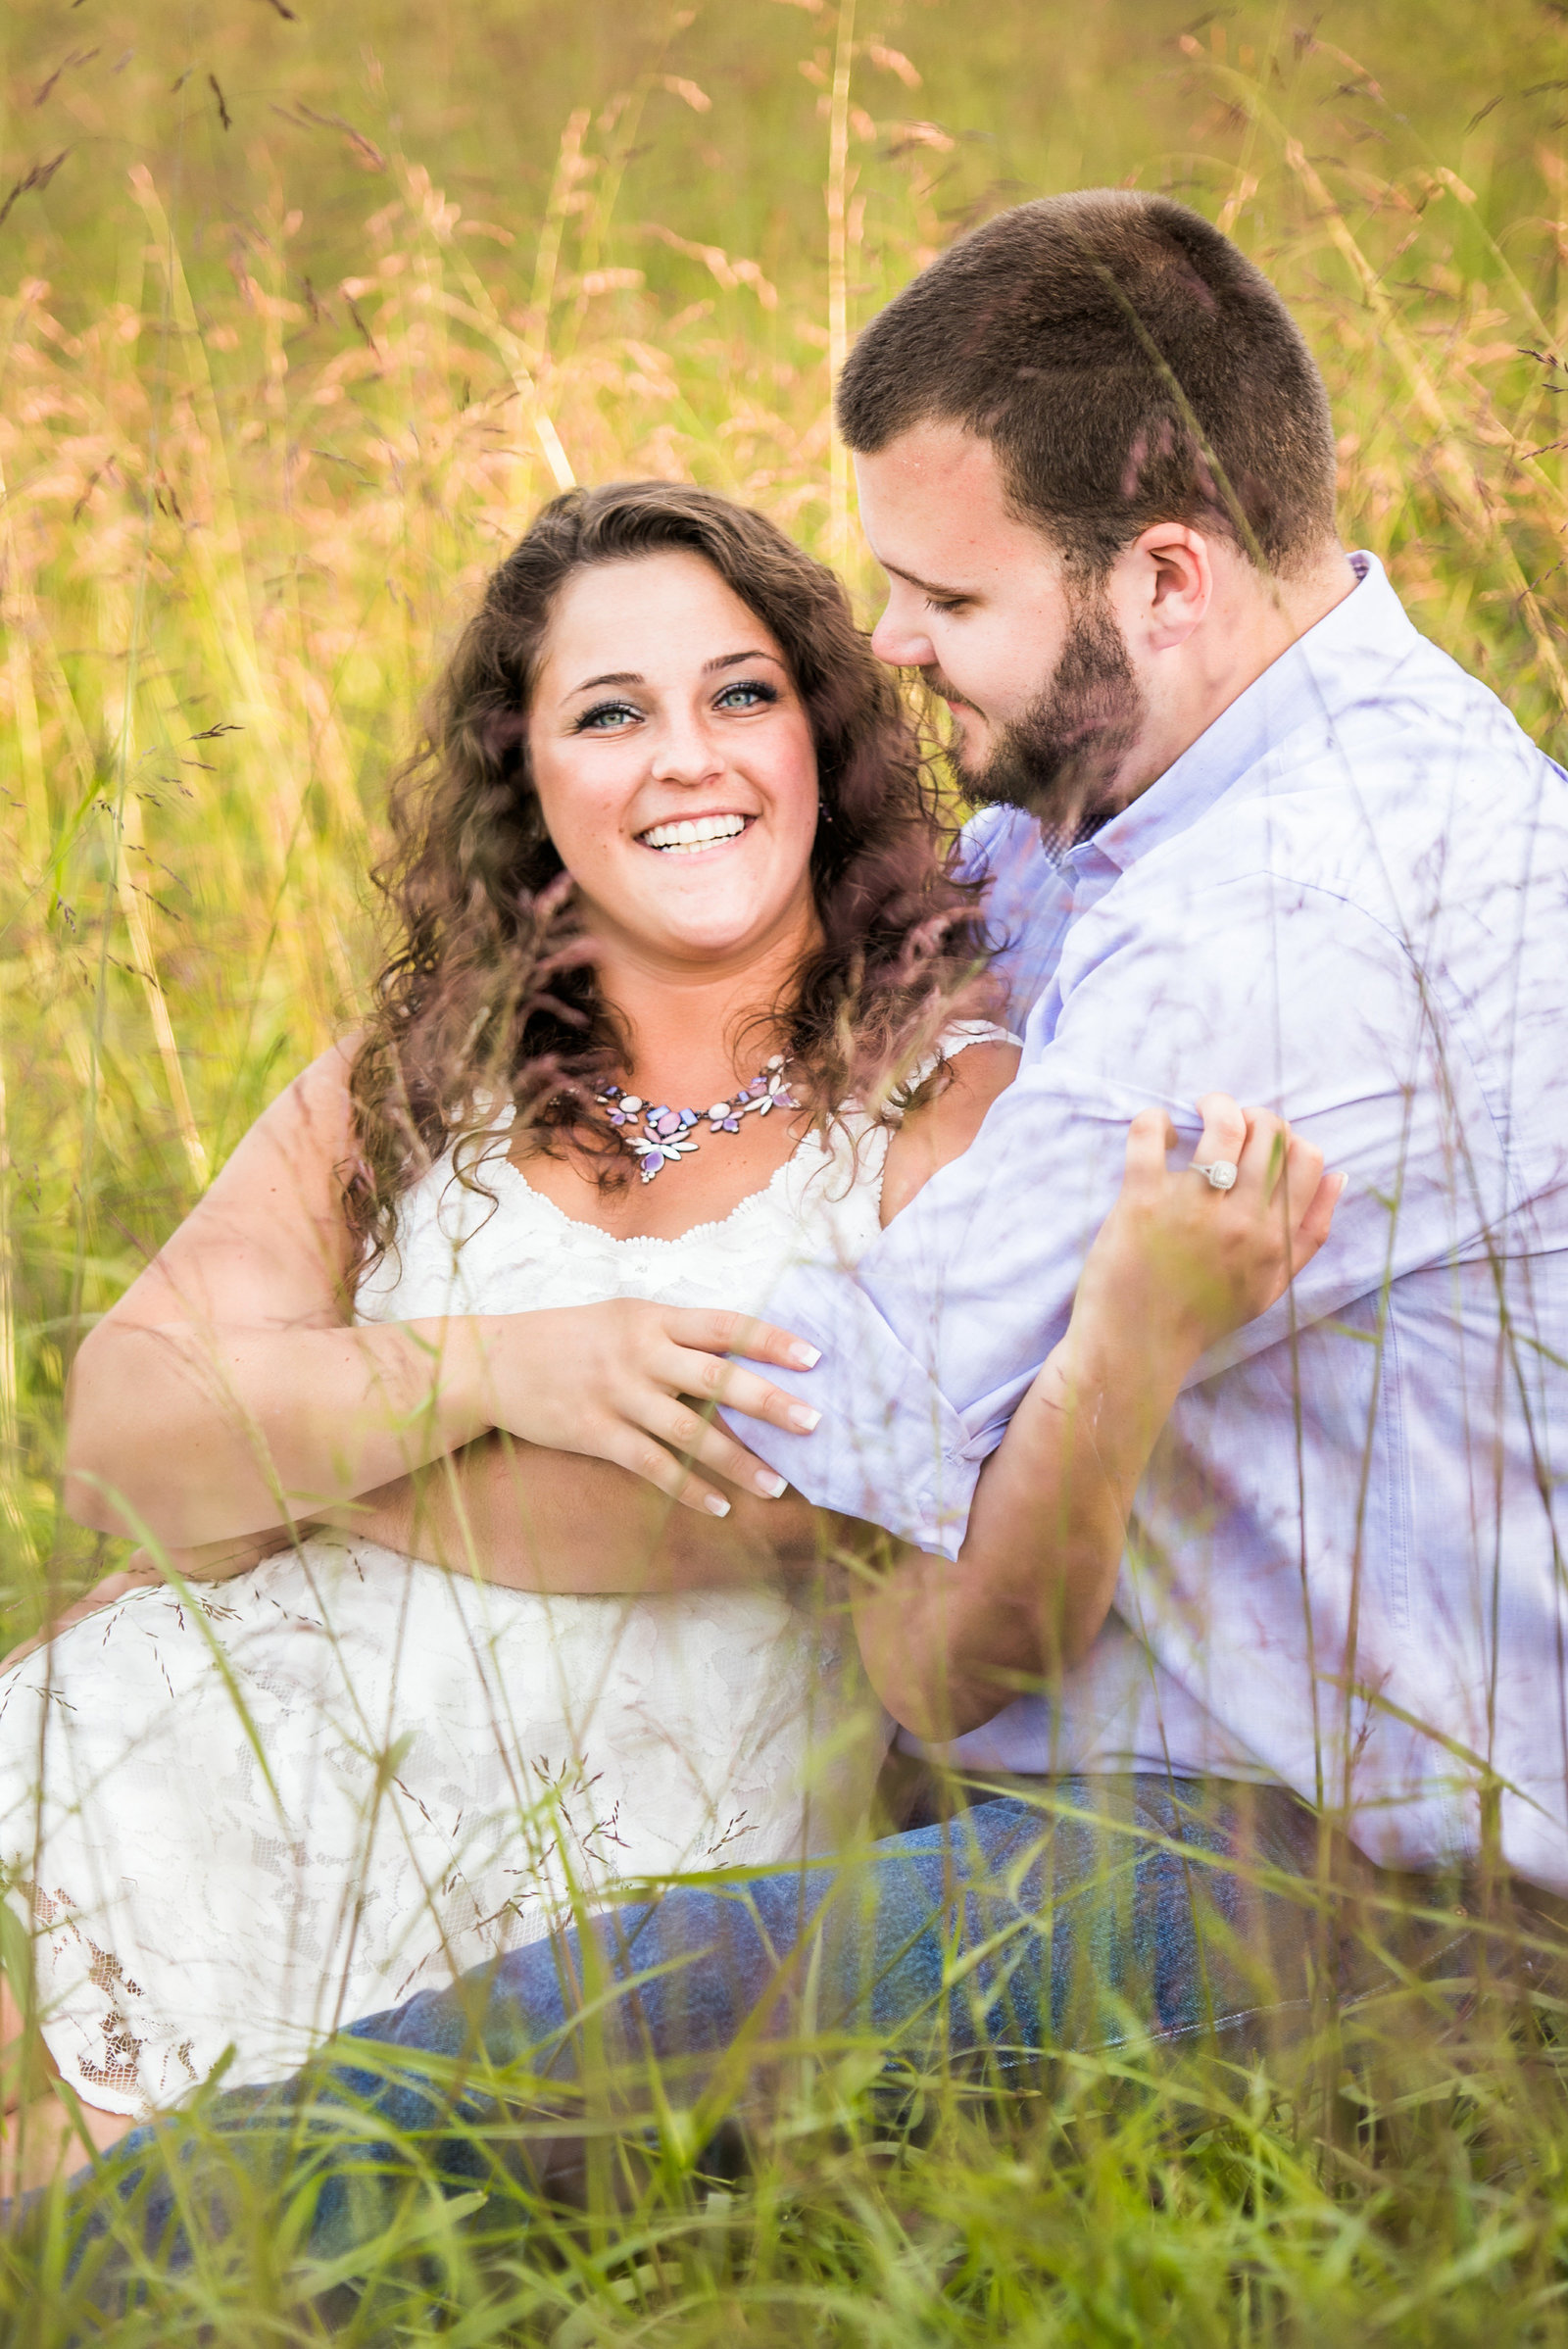 NJ_Rustic_Engagement_Photography024